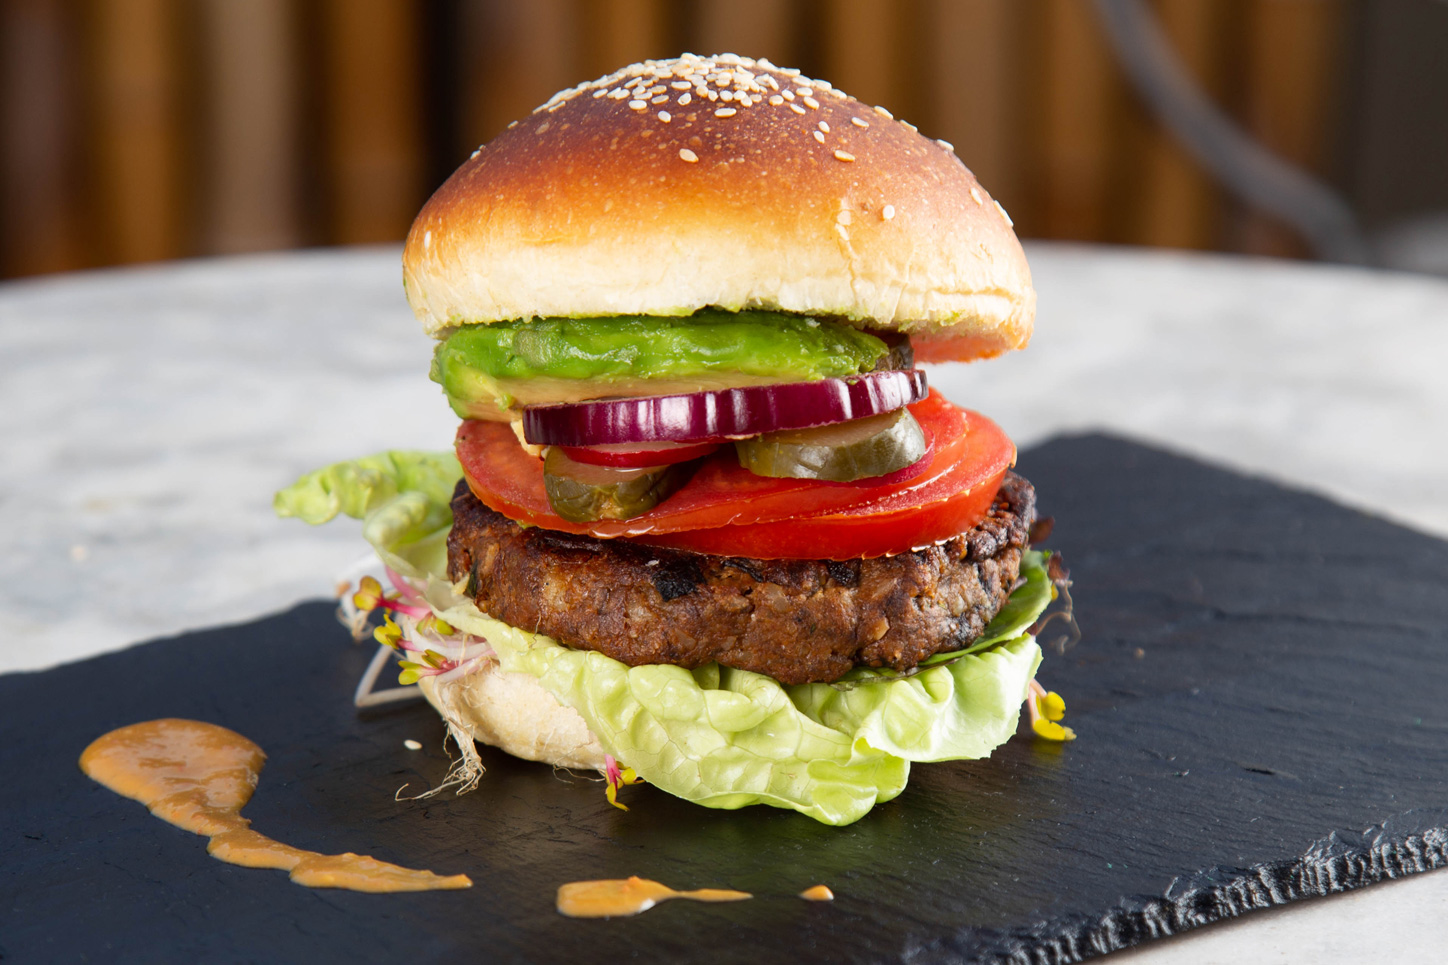 Forget Plants. Alt-Meat Needs More Mycoprotein